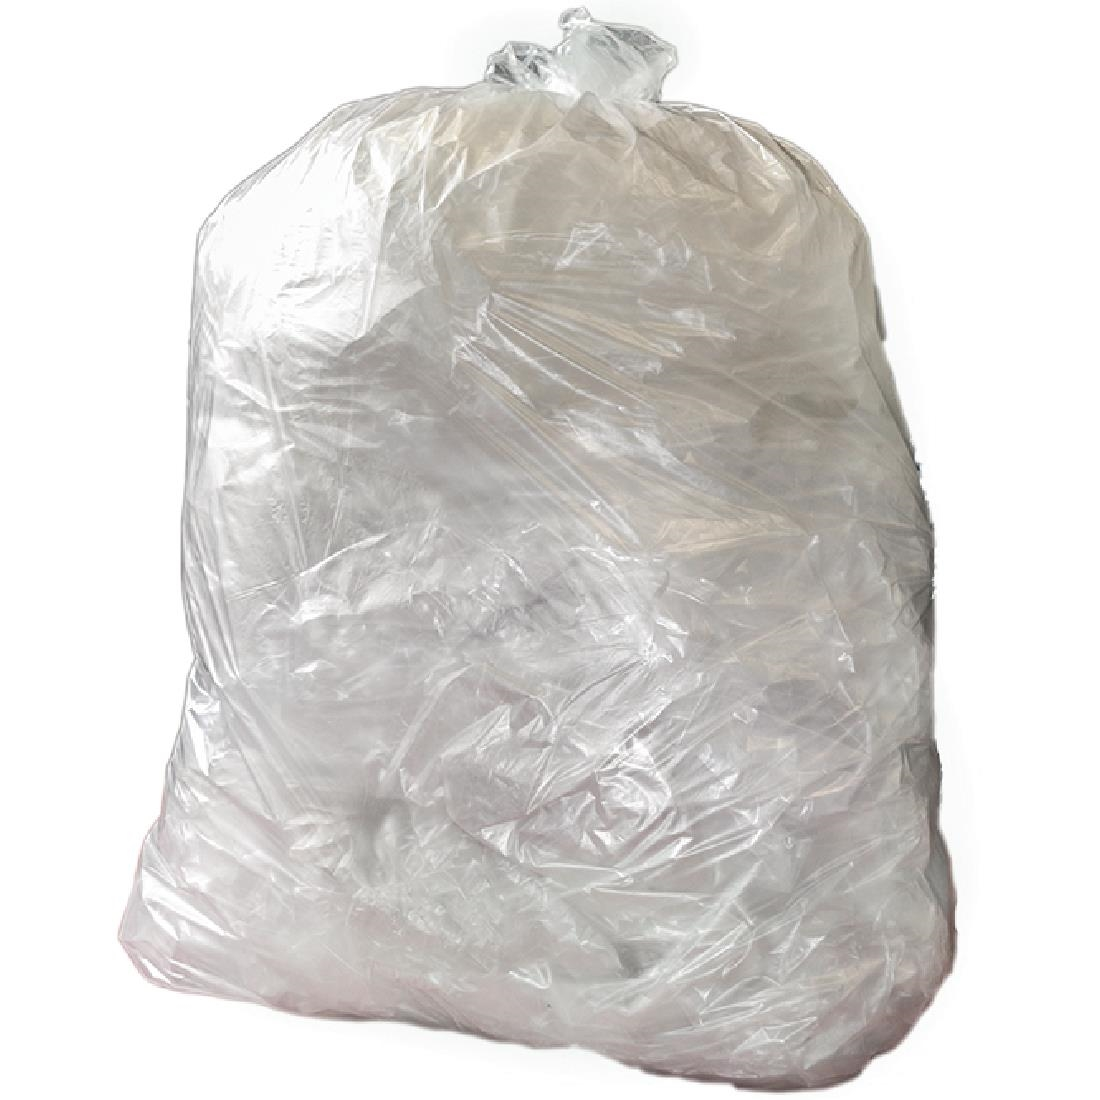 Image of Jantex Large Heavy Duty Clear Bin Bags 120Ltr (Pack of 200) Pack of 200